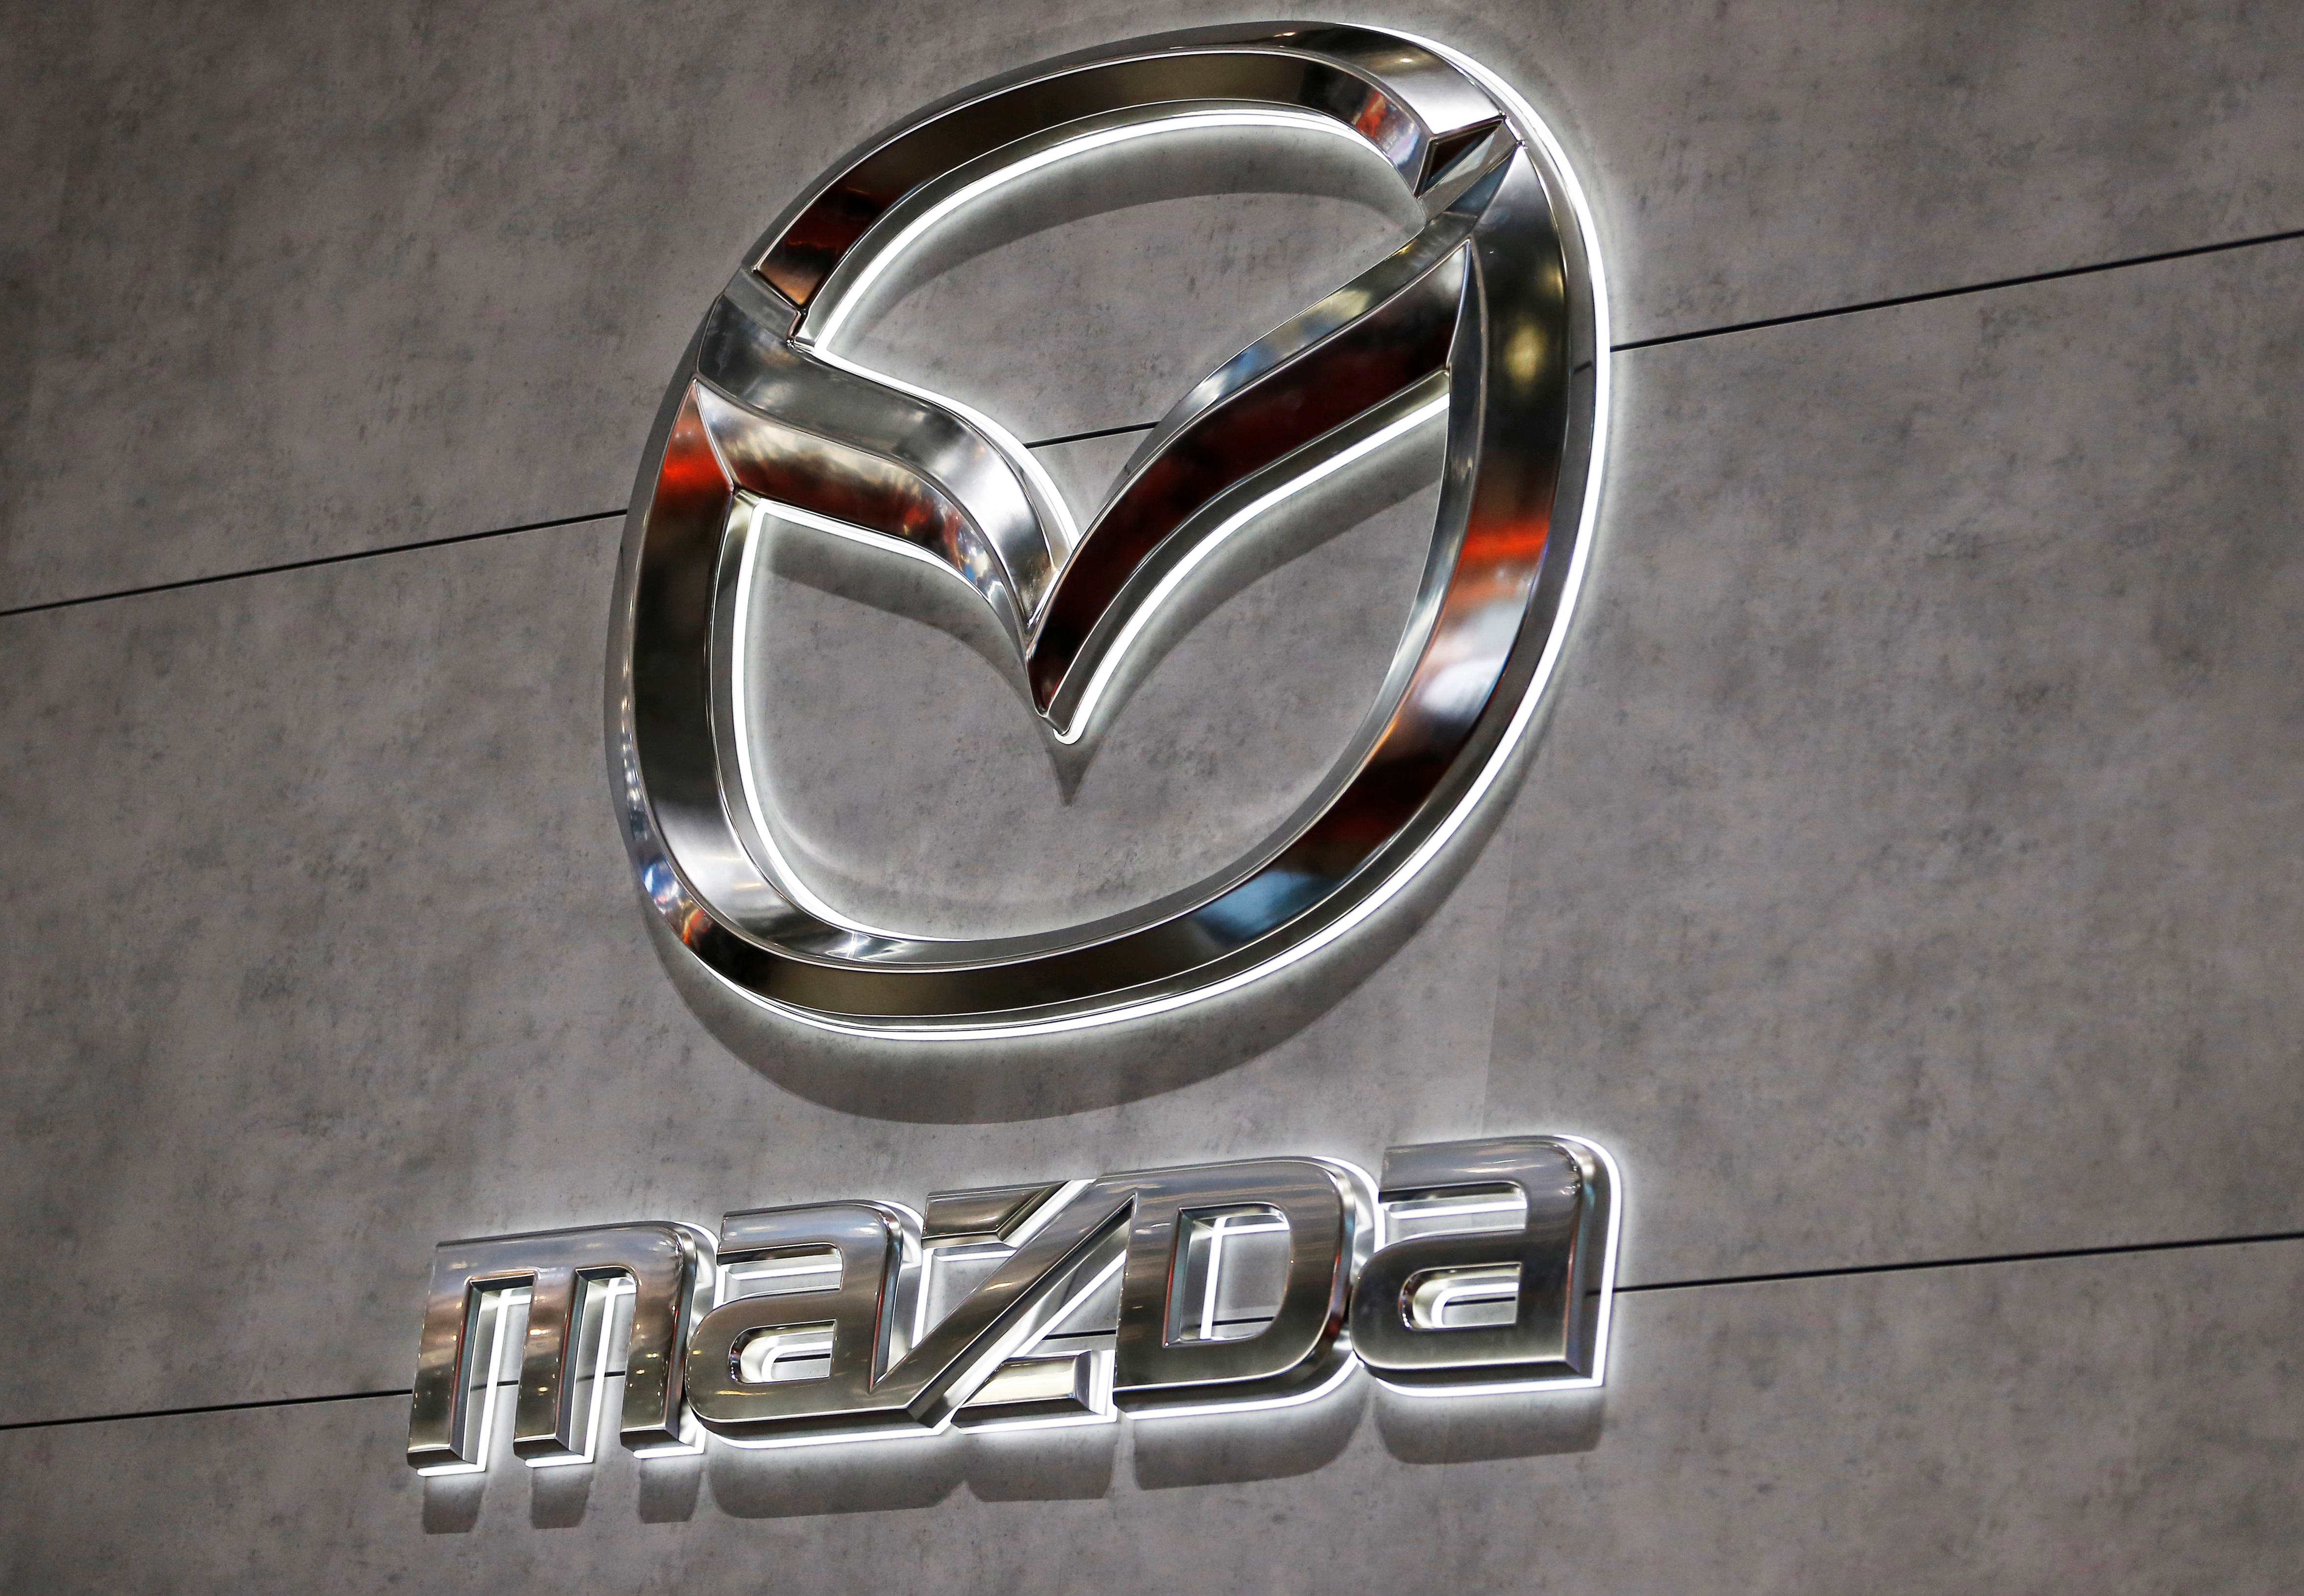 A Mazda logo is displayed at the 89th Geneva International Motor Show in Geneva, Switzerland March 5, 2019.  REUTERS/Pierre Albouy/Files